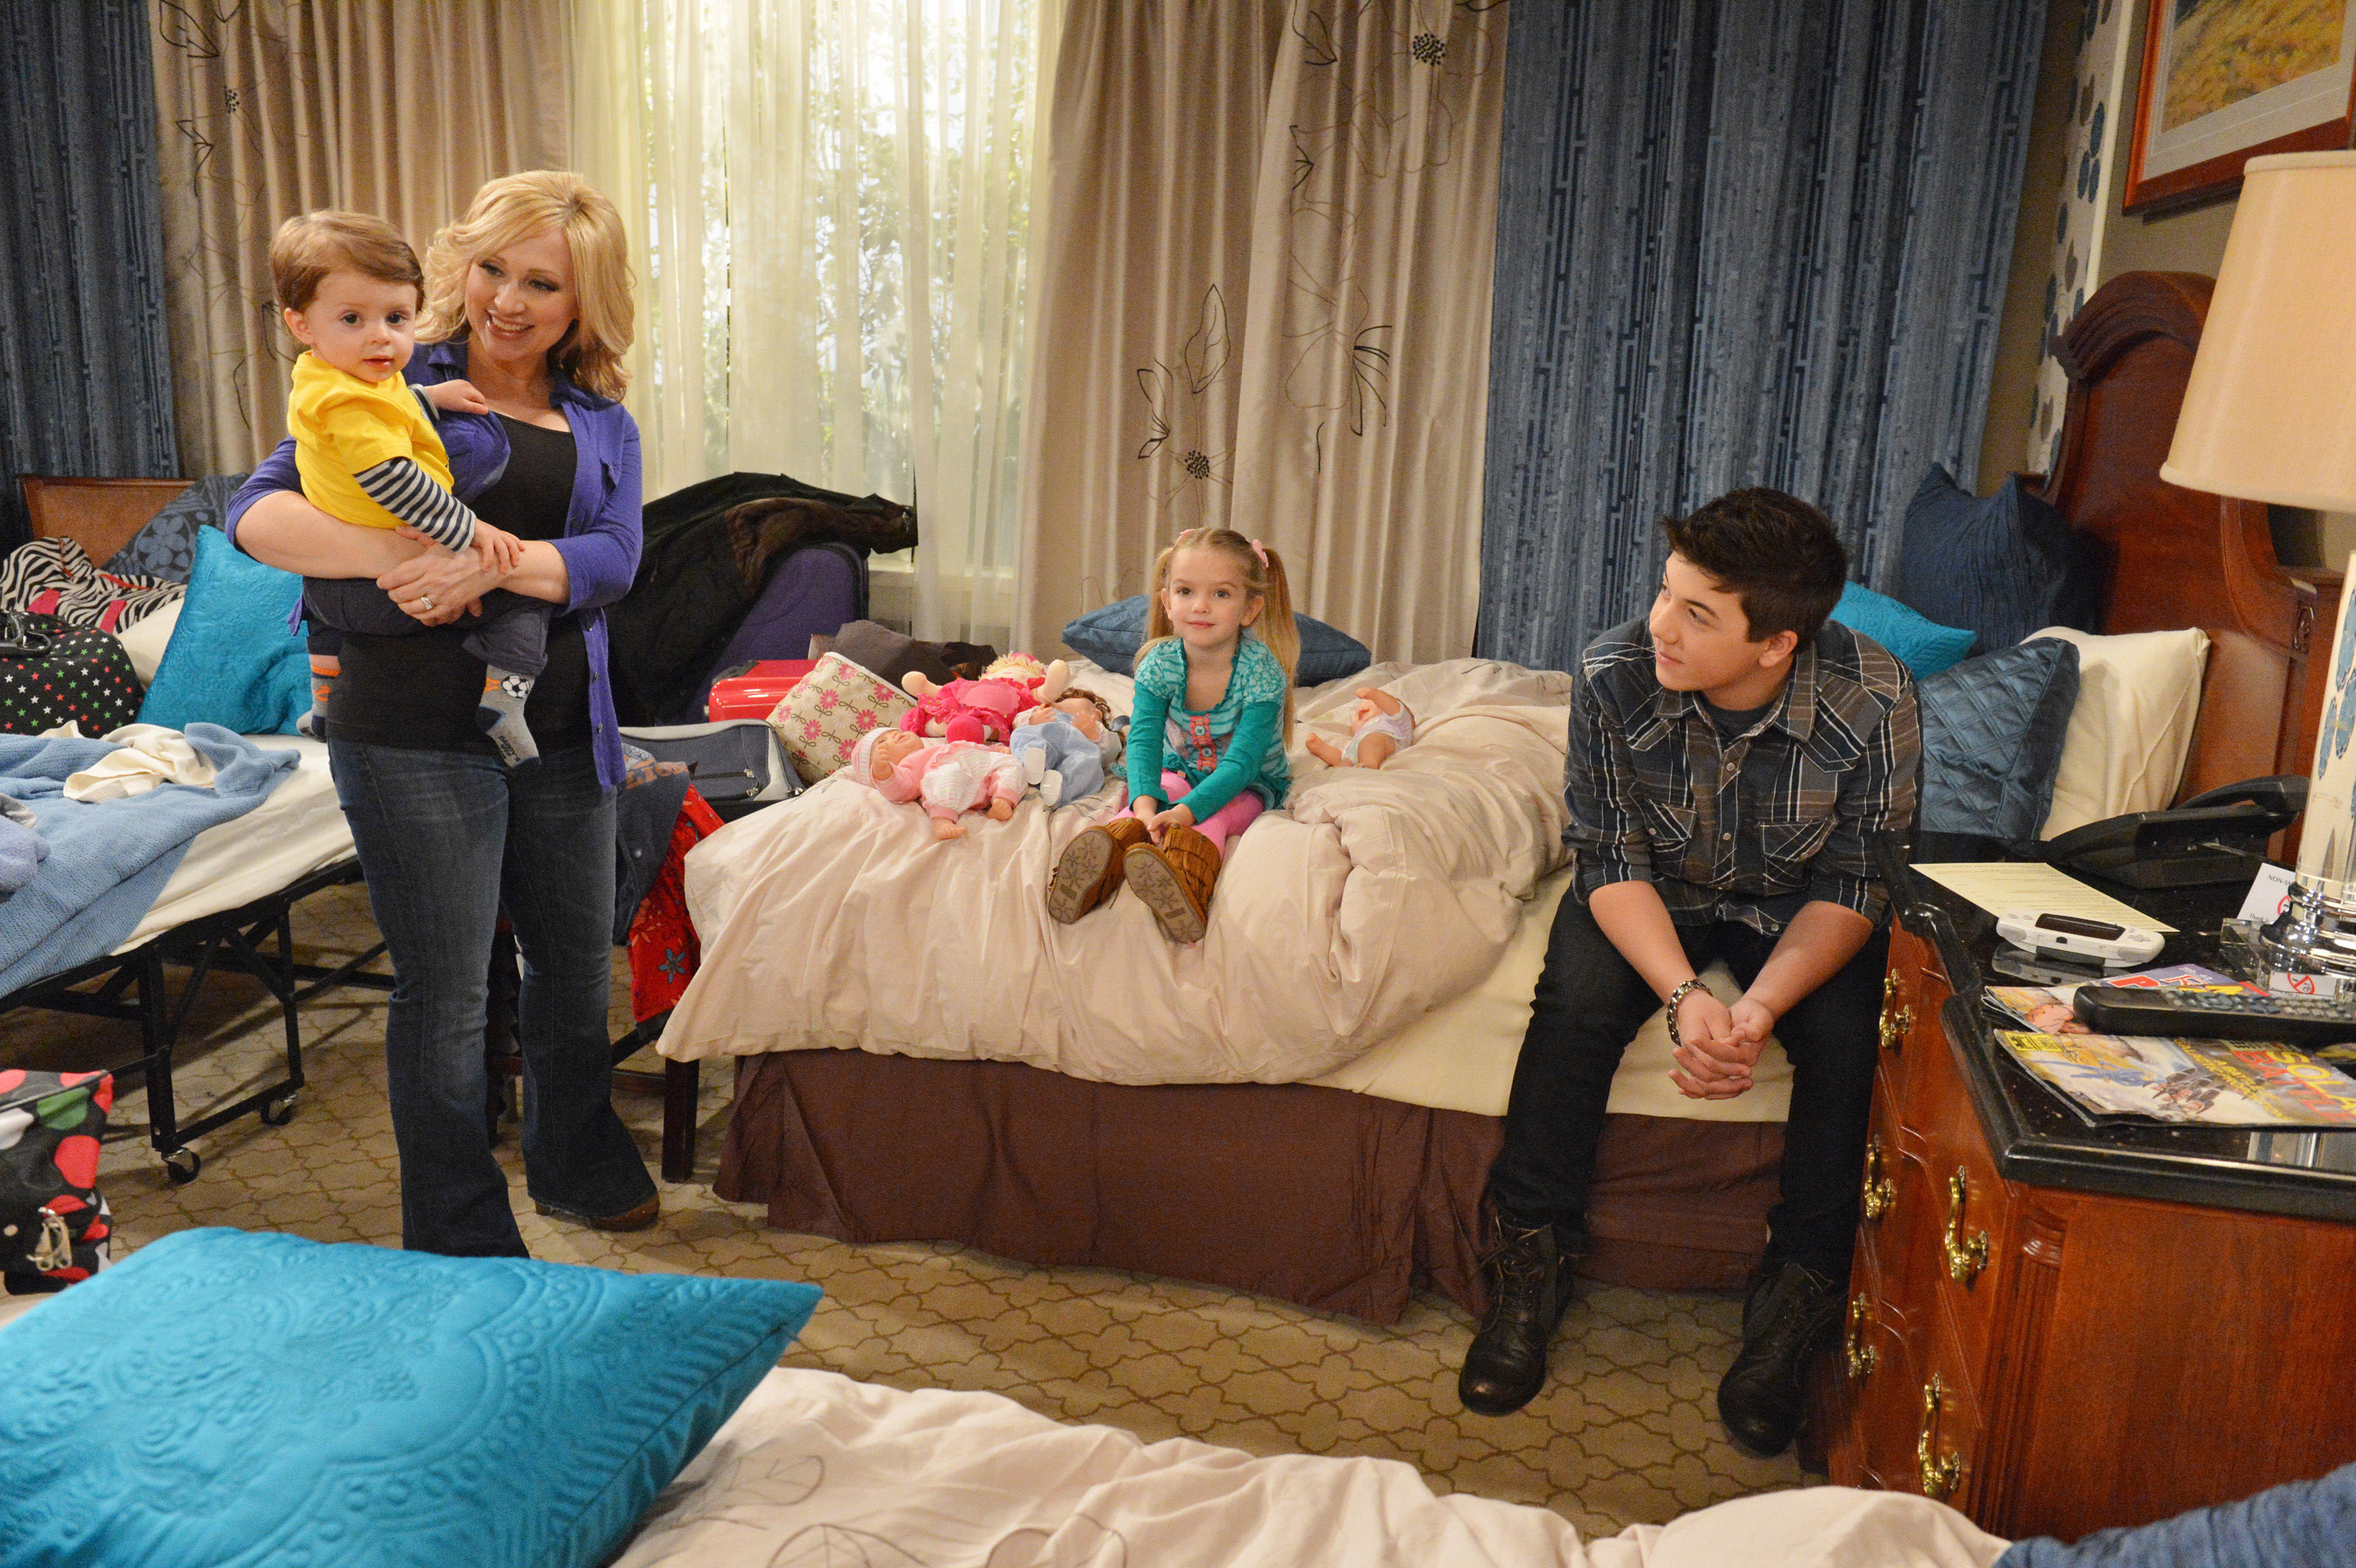 Leigh-Allyn Baker holds Logan Moreau while Mia Talerico and Bradley Steven Perry sit on a bed